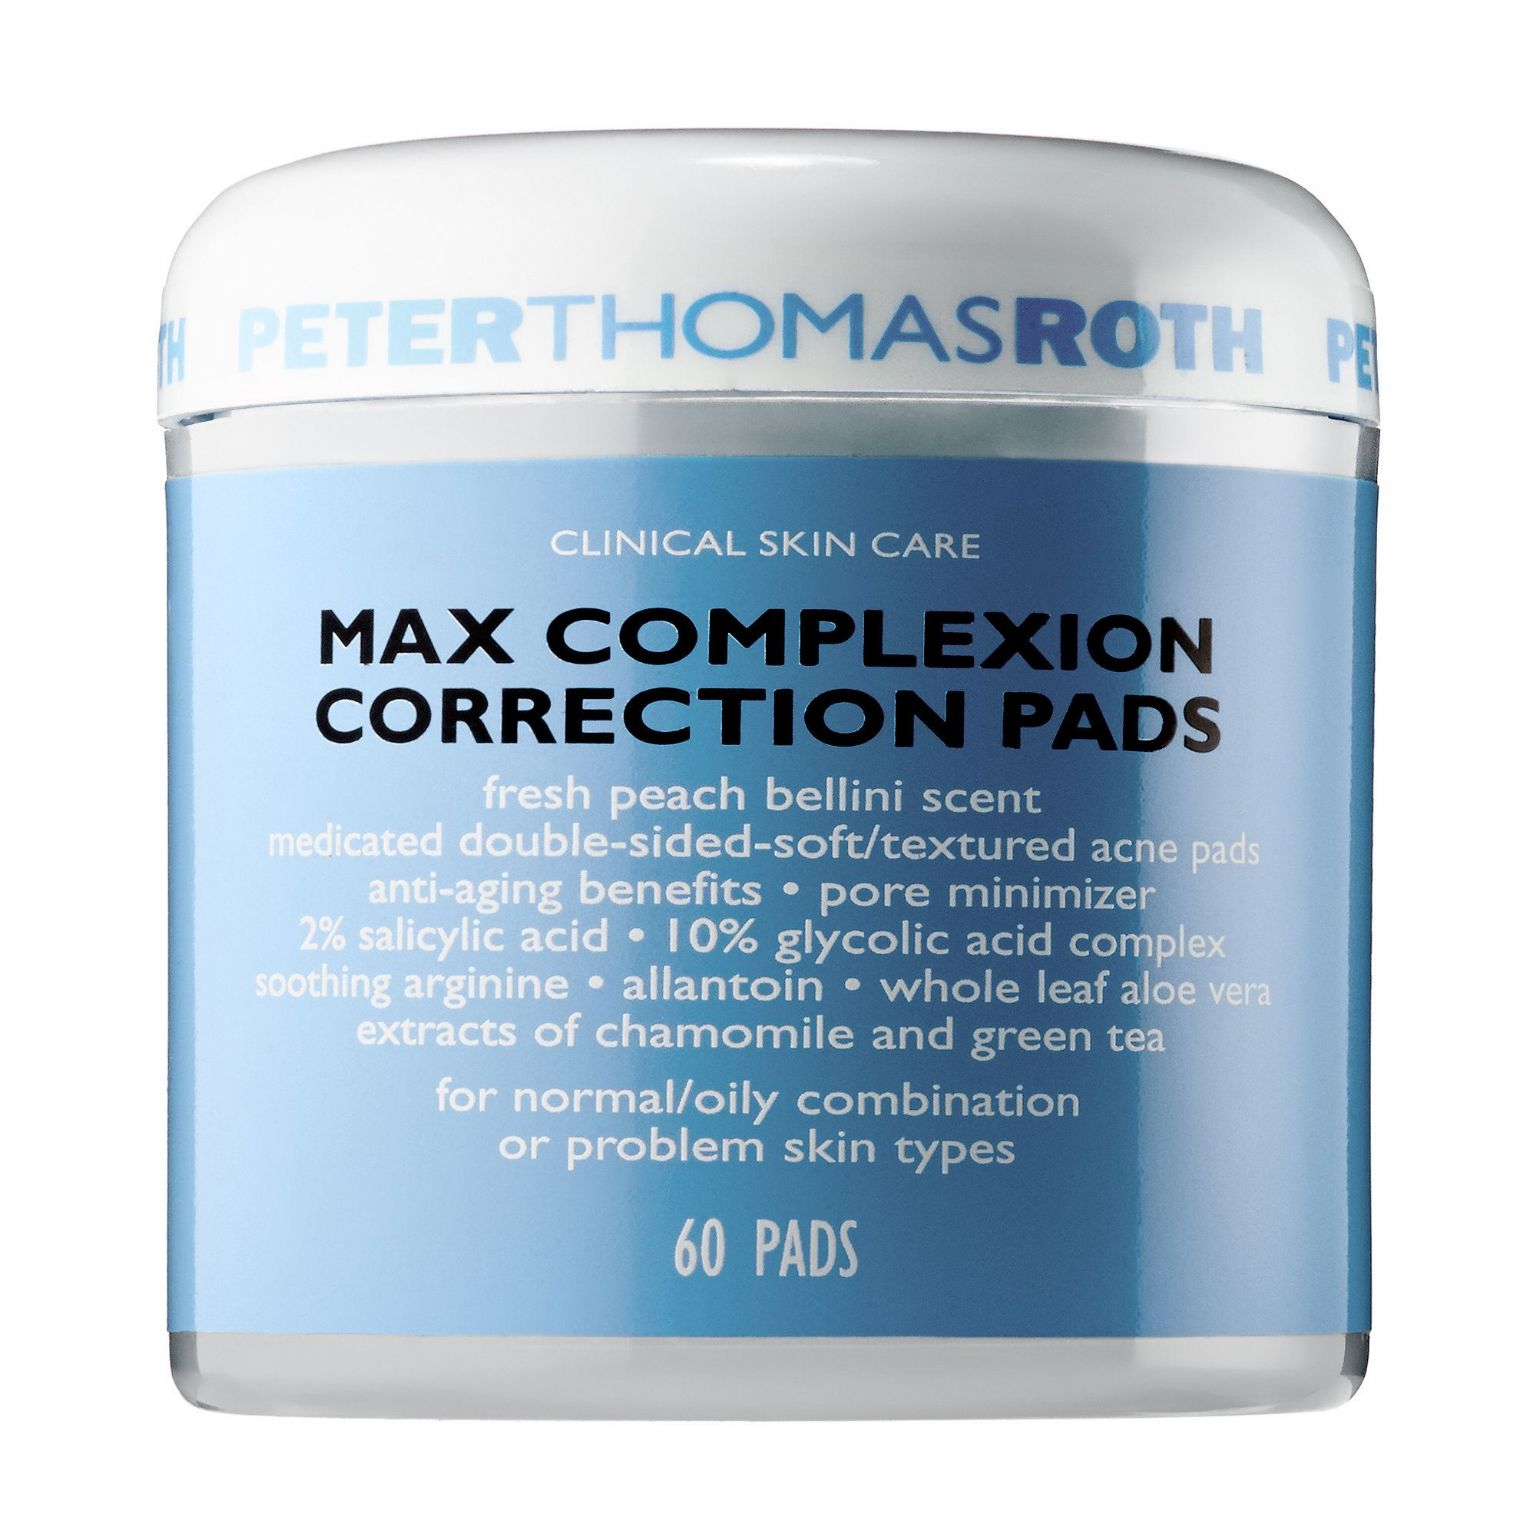 Max Complexion Correction Pads